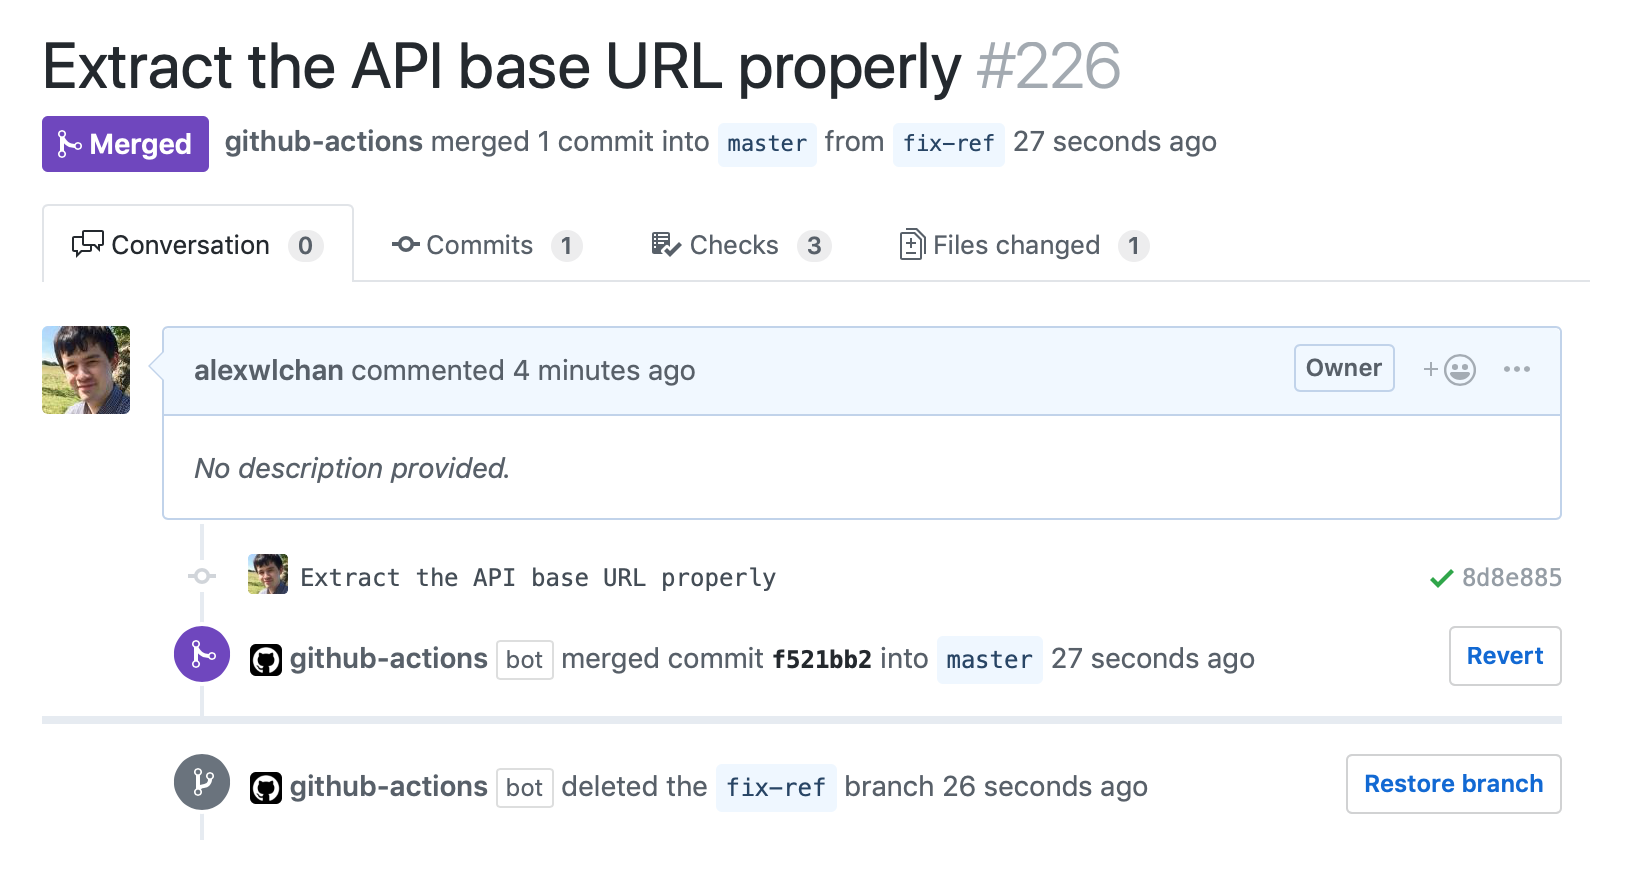 A screenshot of the GitHub pull request UI, showing the github-actions bot merging and deleting a branch.